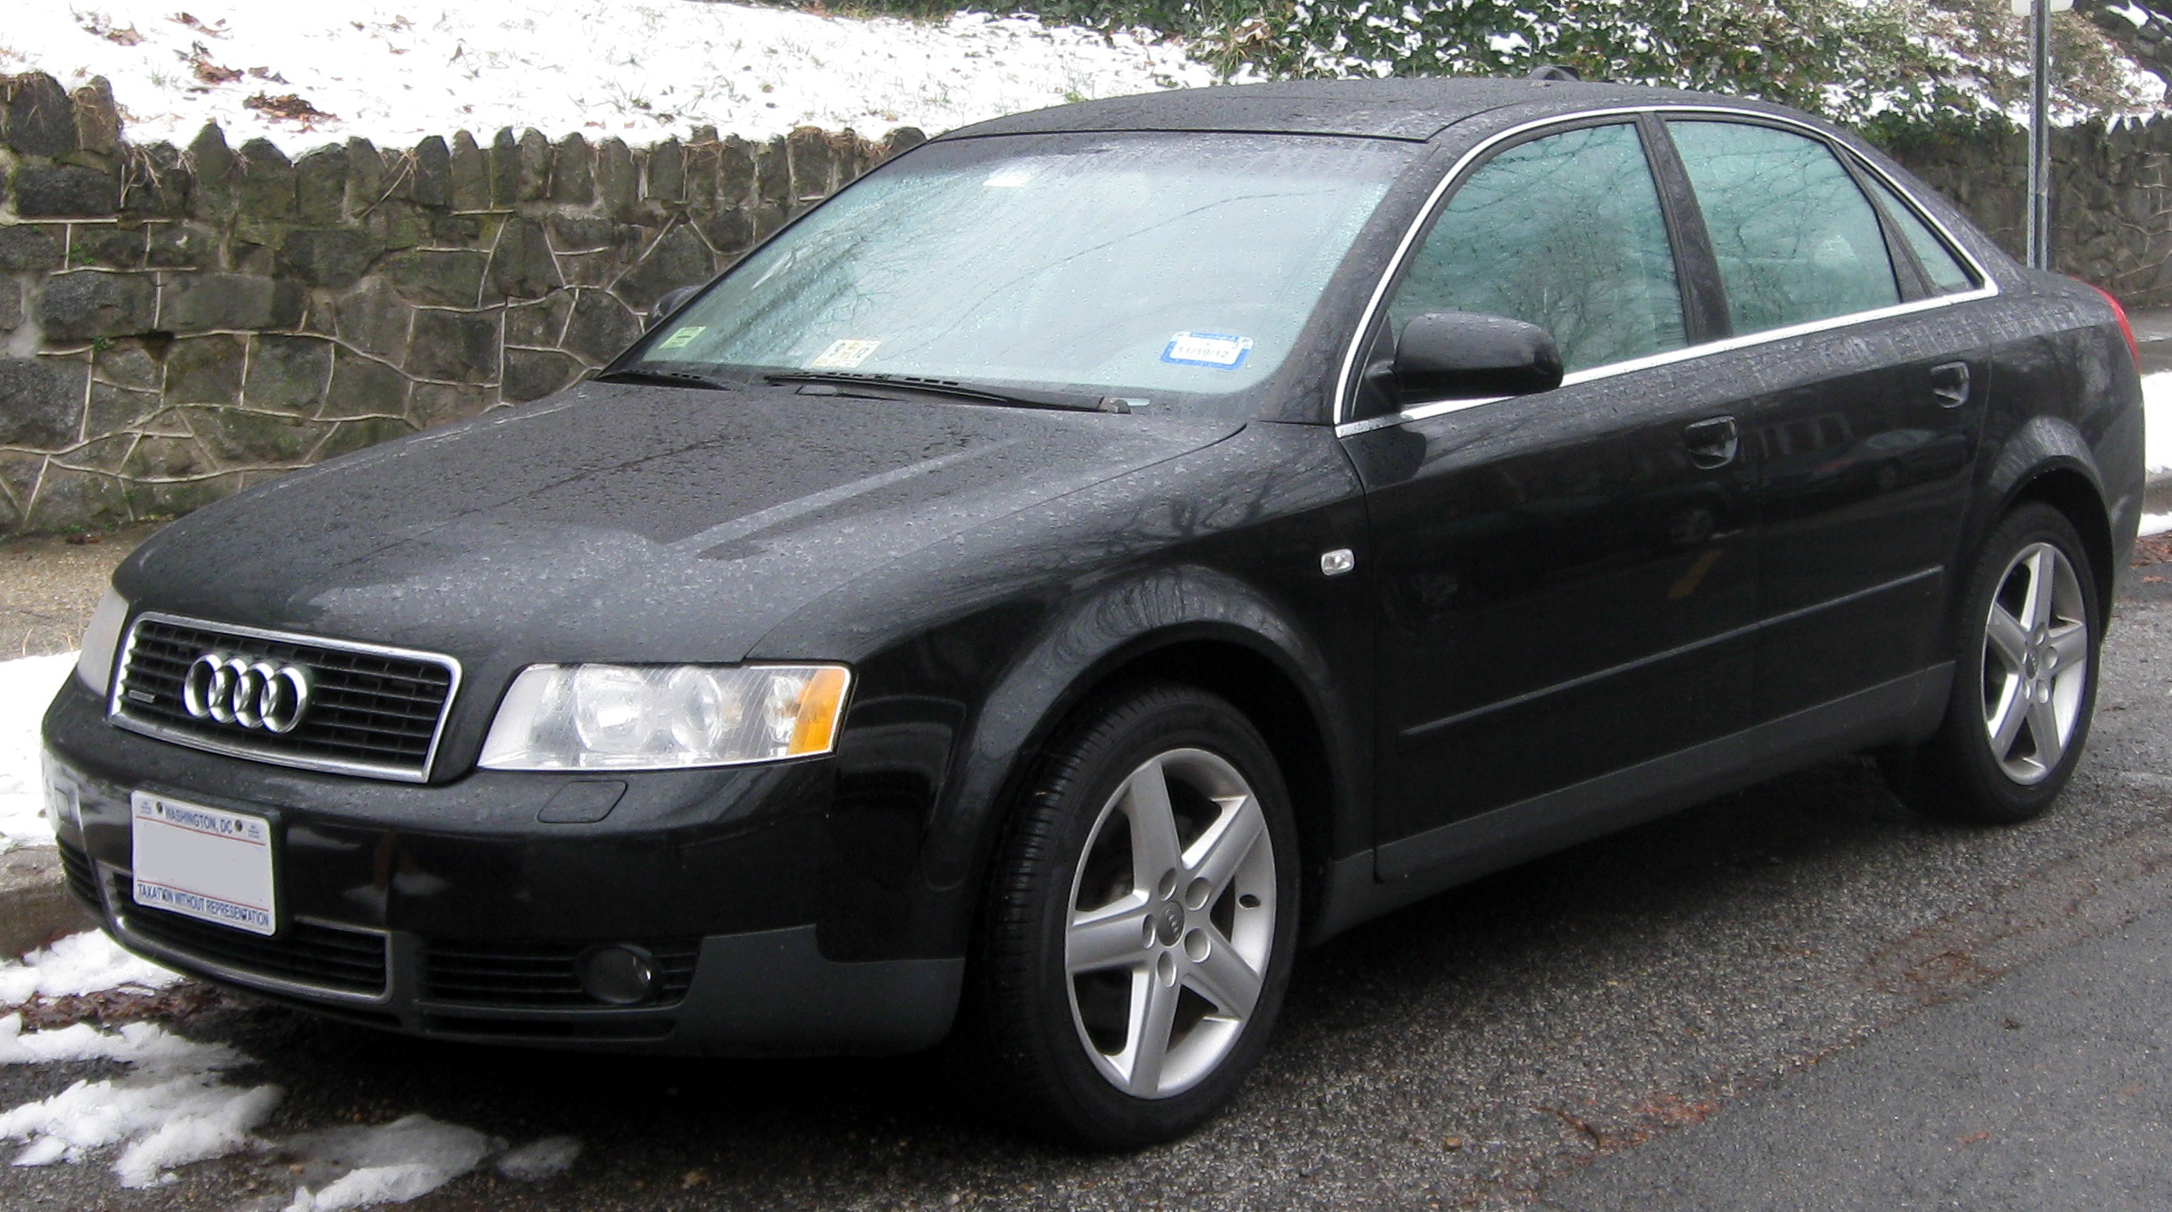 file audi a4 b6 sedan 01 23 wikimedia commons. Black Bedroom Furniture Sets. Home Design Ideas